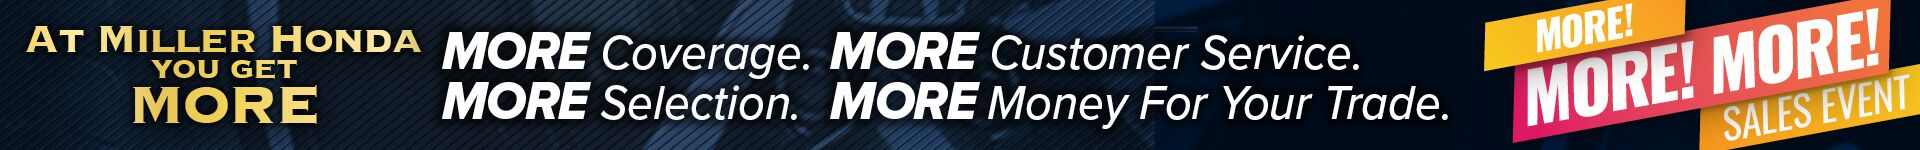 More, More, More at Miller Honda